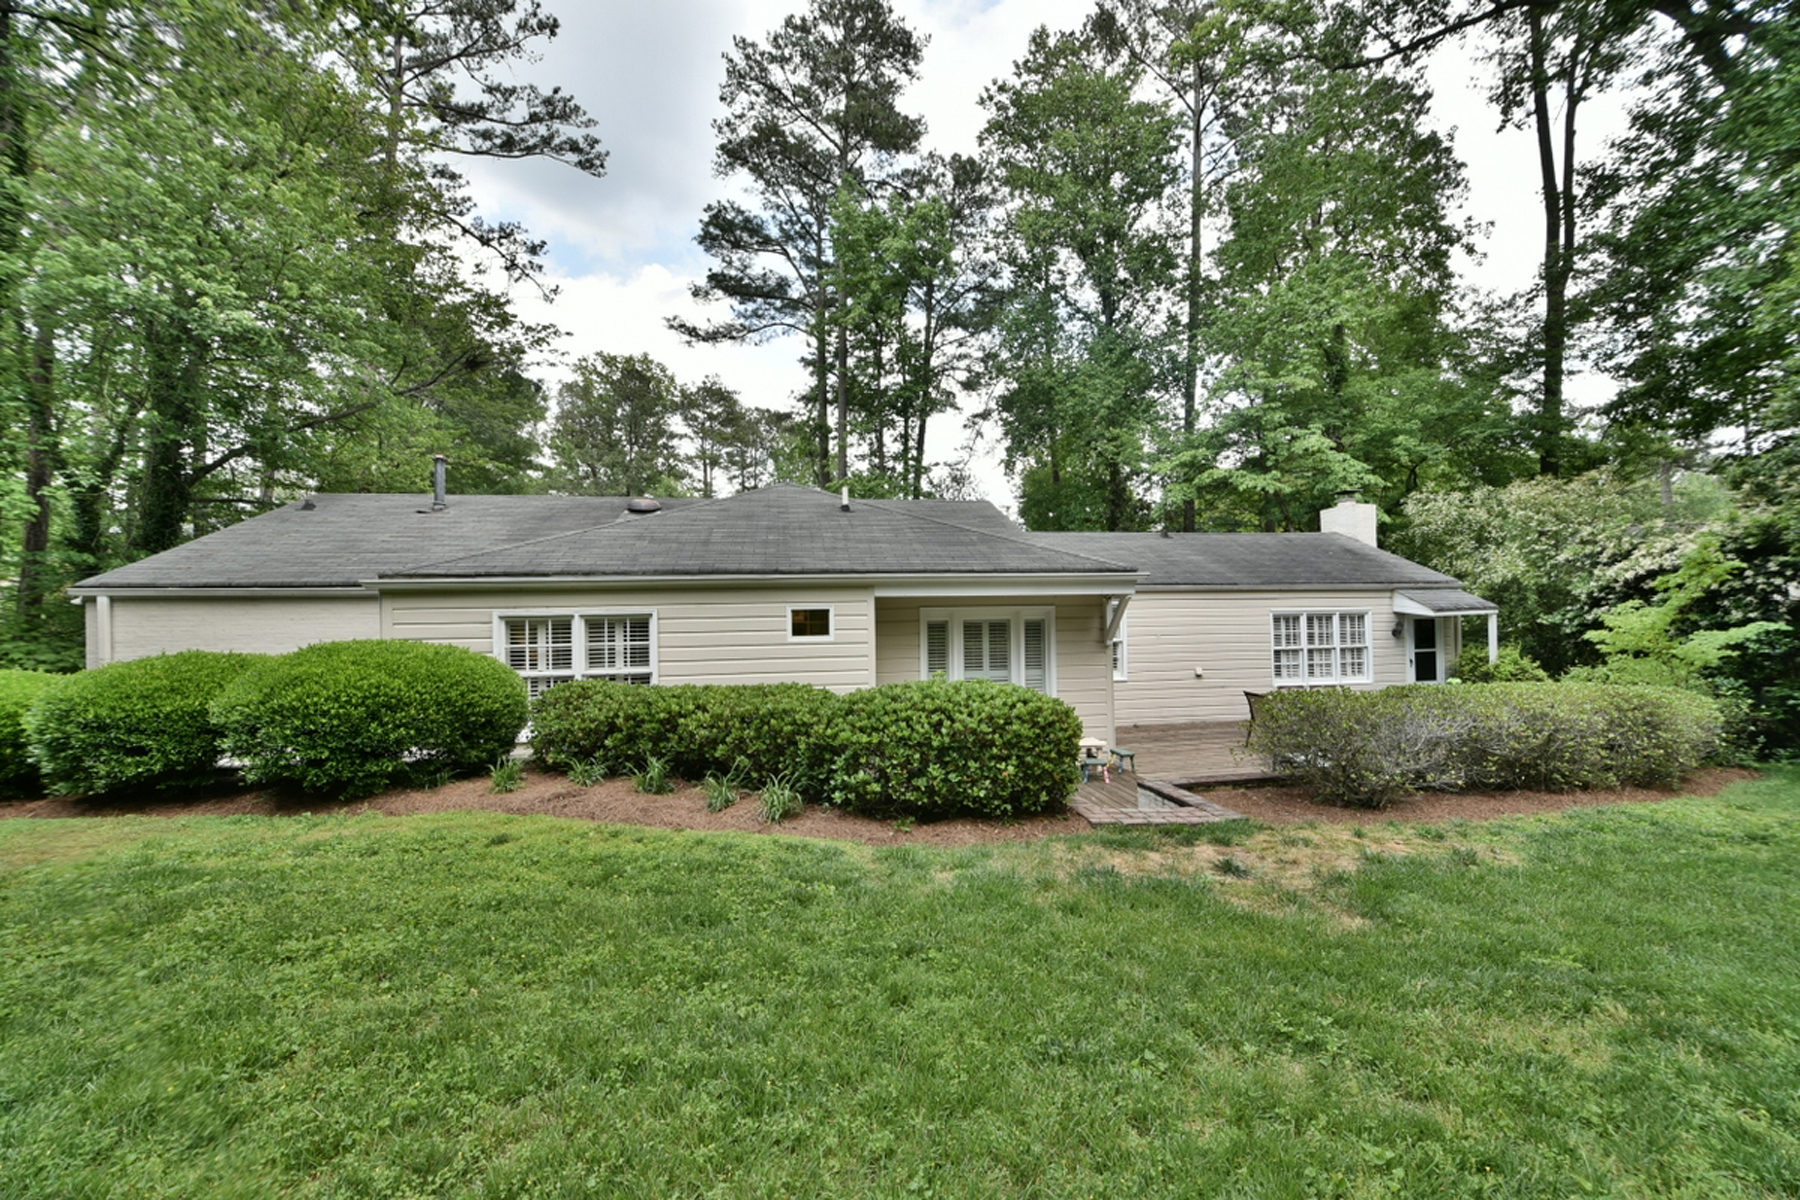 Additional photo for property listing at Charming Ranch With Private Backyard 4530 Dalmer Road Atlanta, Georgia 30342 Estados Unidos